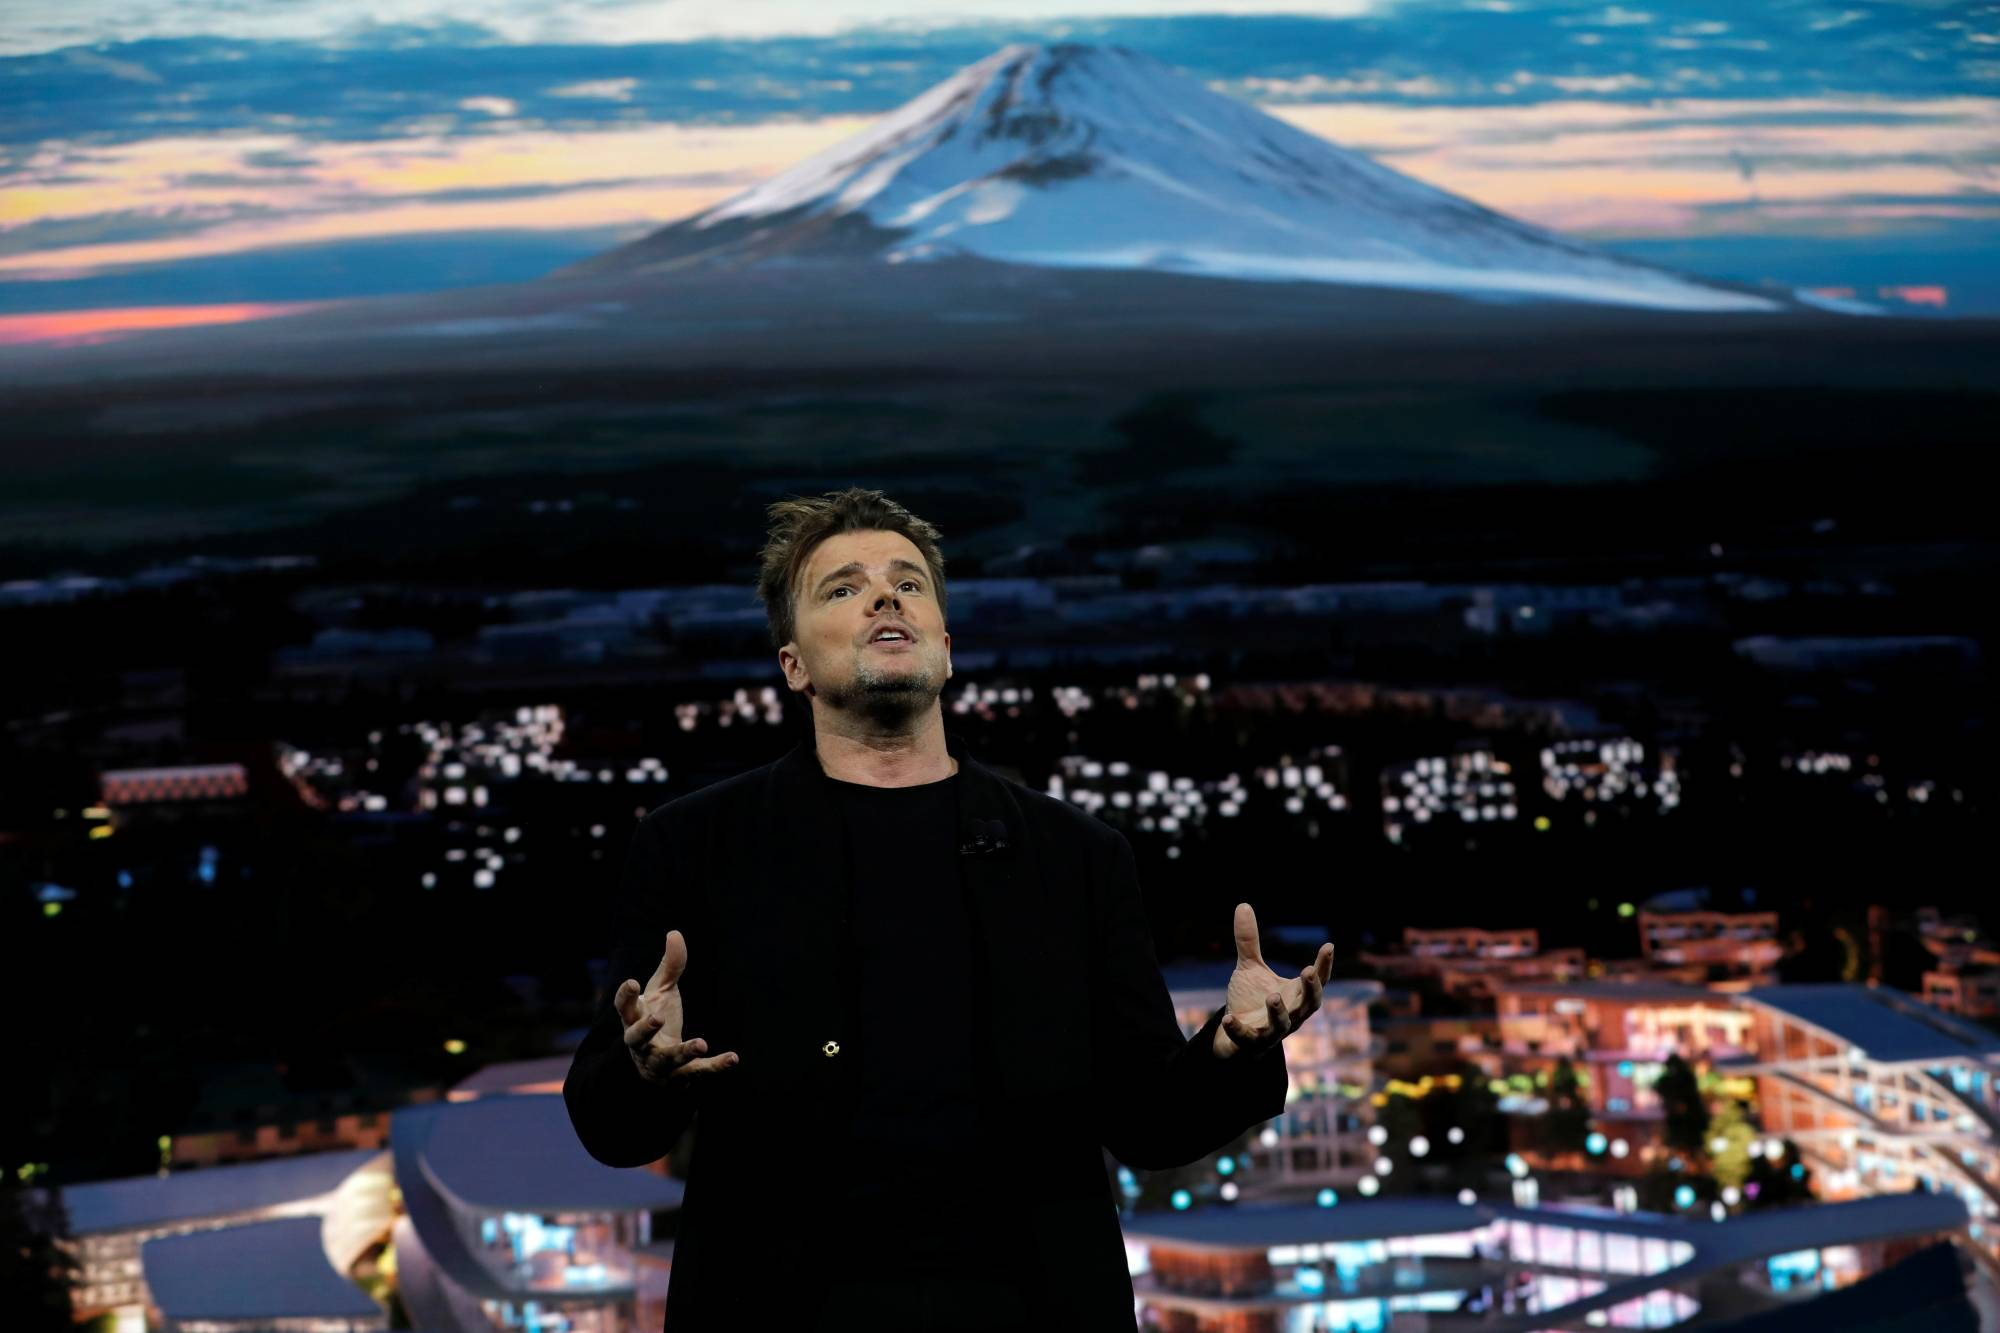 Danish architect Bjarke Ingels, CEO of Bjarke Ingels Group, talks about Woven City, a prototype city of the future on a 175-acre site at the base of Mt. Fuji in Japan, at a Toyota Motor Corporation news conference during the 2020 CES in Las Vegas in January 2020. | REUTERS